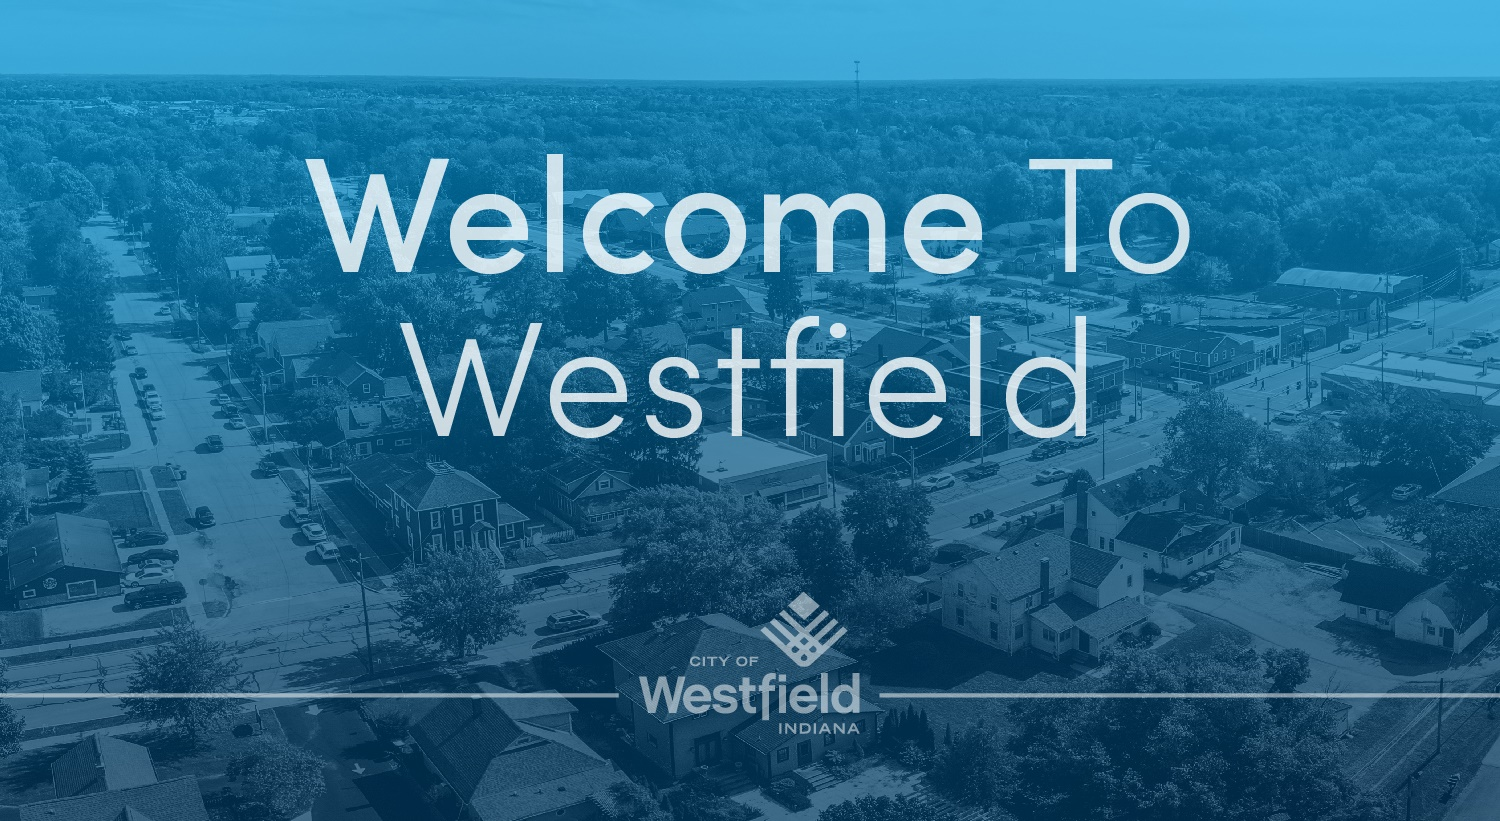 Photo for: NEWS RELEASE: Business to Bring More than 40 Jobs to Westfield